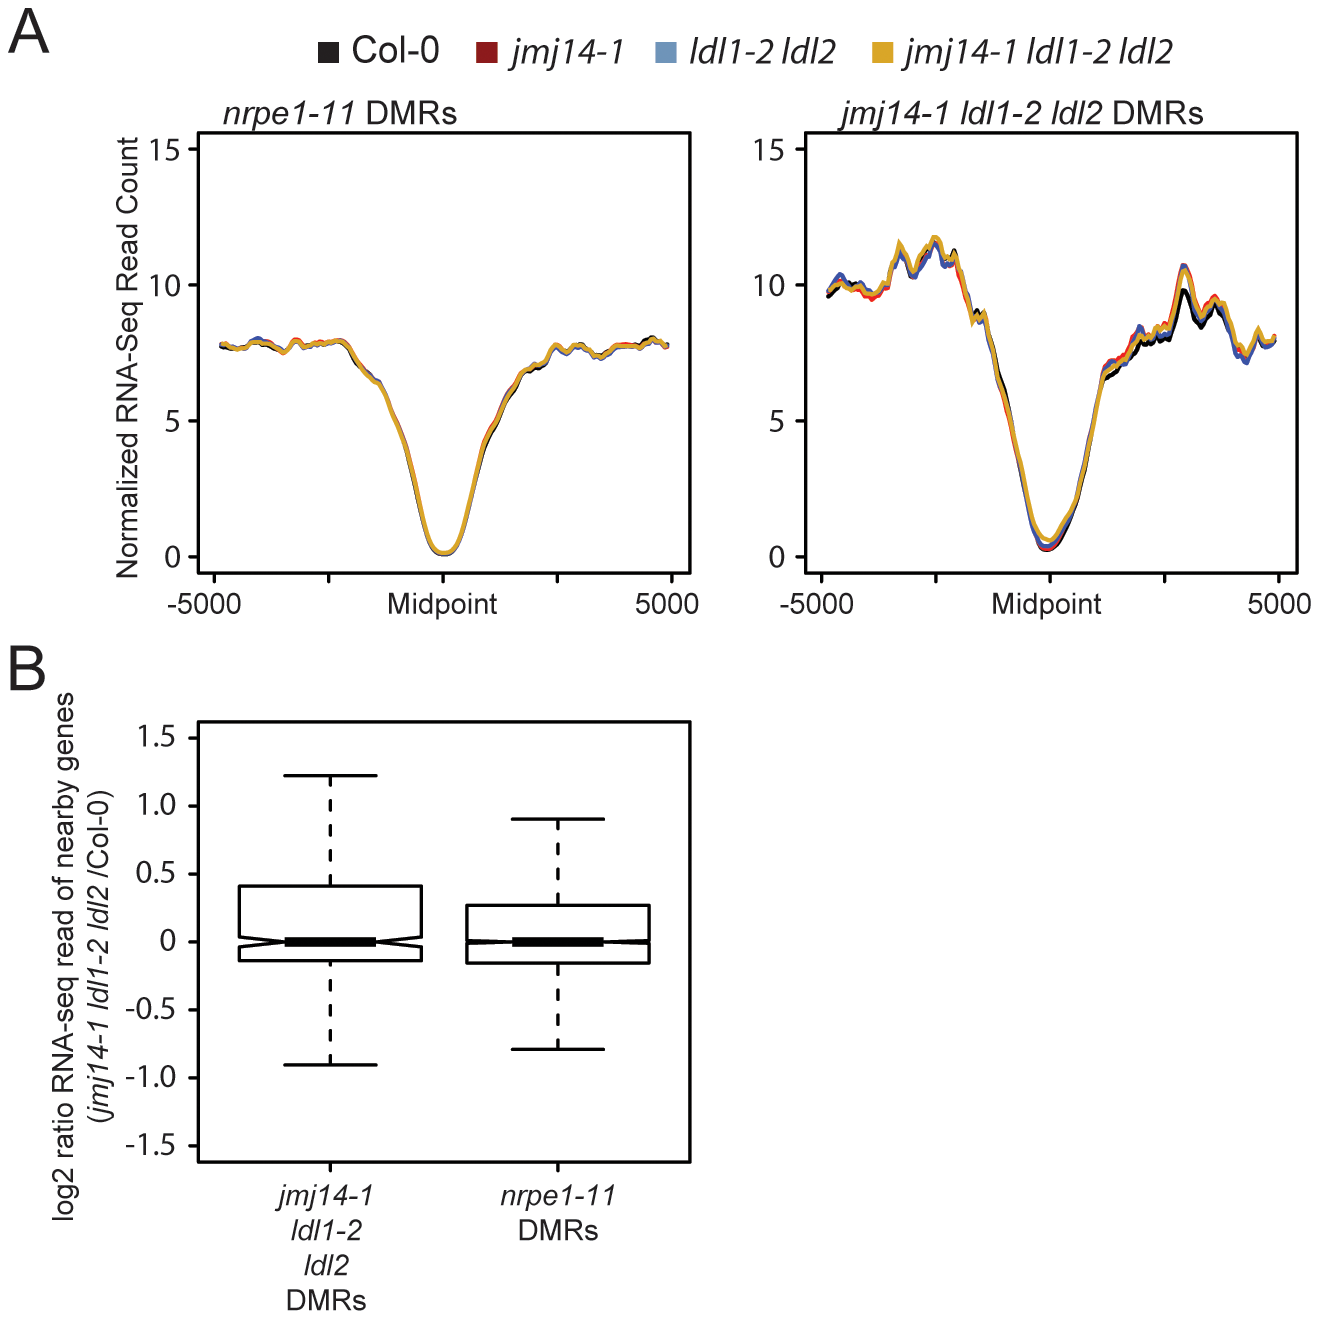 Changes in histone methylation at DMRs do not correlate with alterations in mRNA expression.